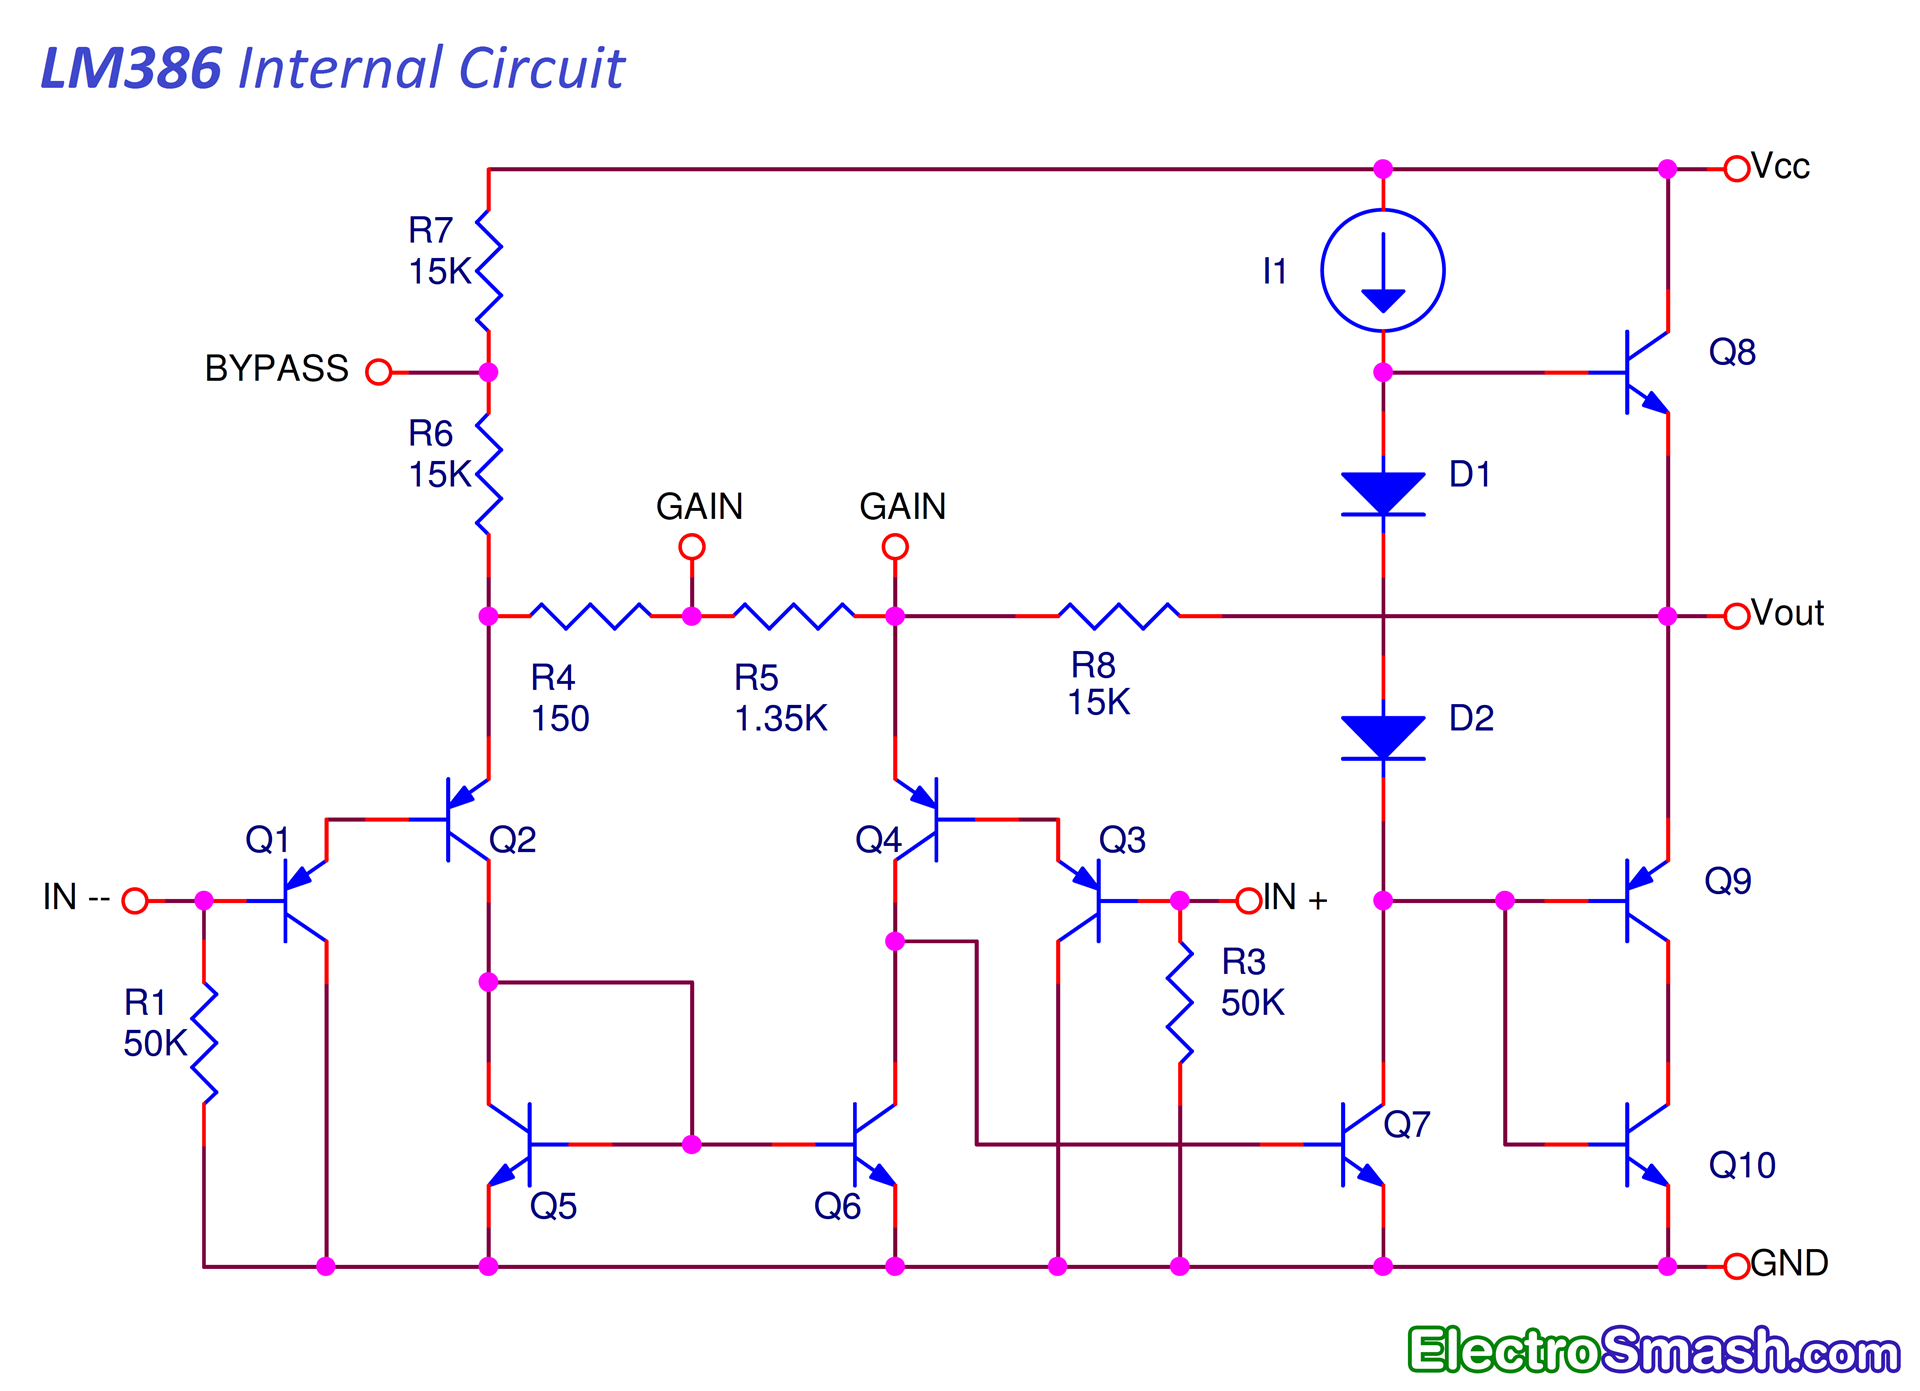 Ibanez Tube Screamer Mod Schematic as well Schematics besides Selected Schematics moreover Mosrite Guitar Wiring Diagram additionally Schematics. on ibanez tube screamer schematic on mod